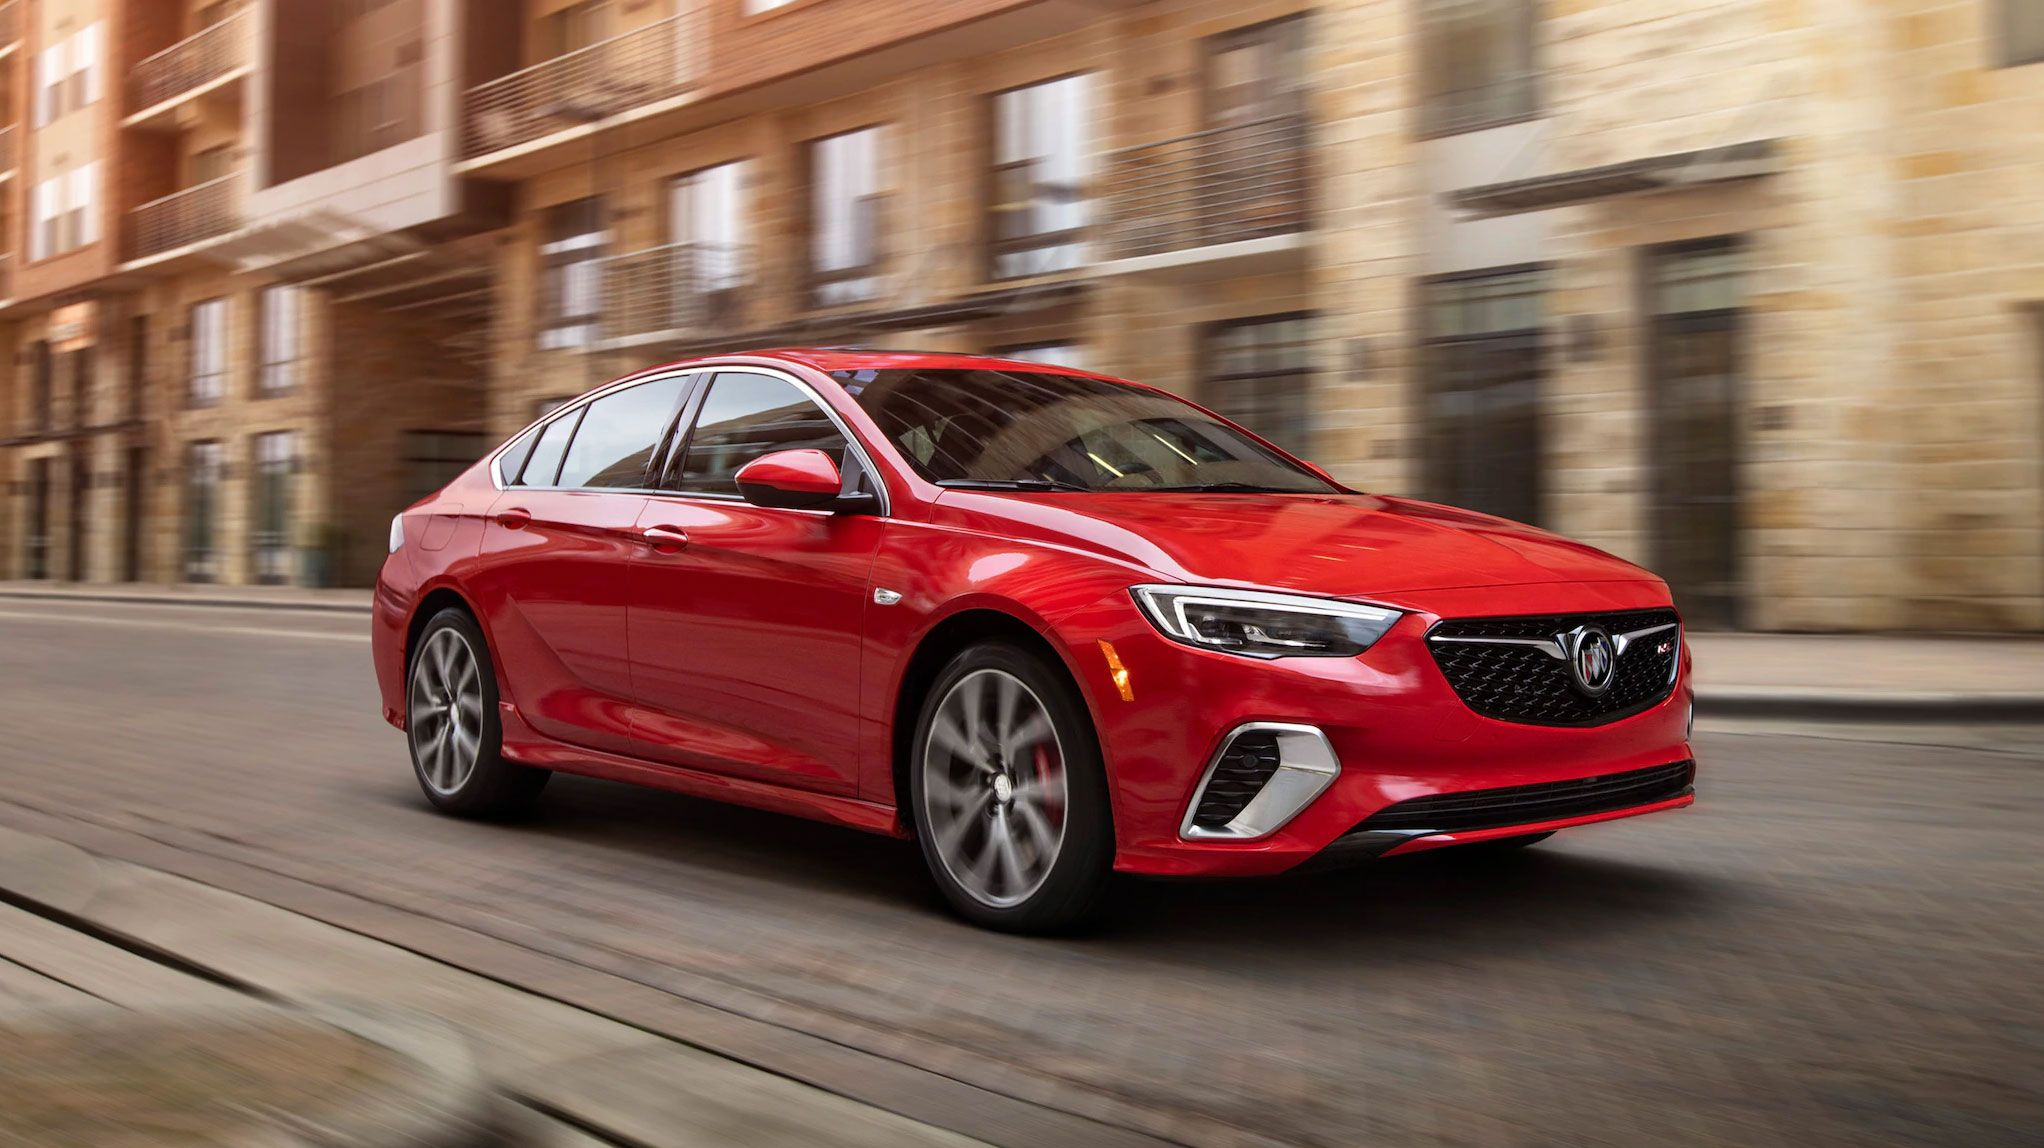 2020 Buick Regal Gs Review, Pricing, And Specs 2021 Buick Regal Gs Price, Review, 0-60